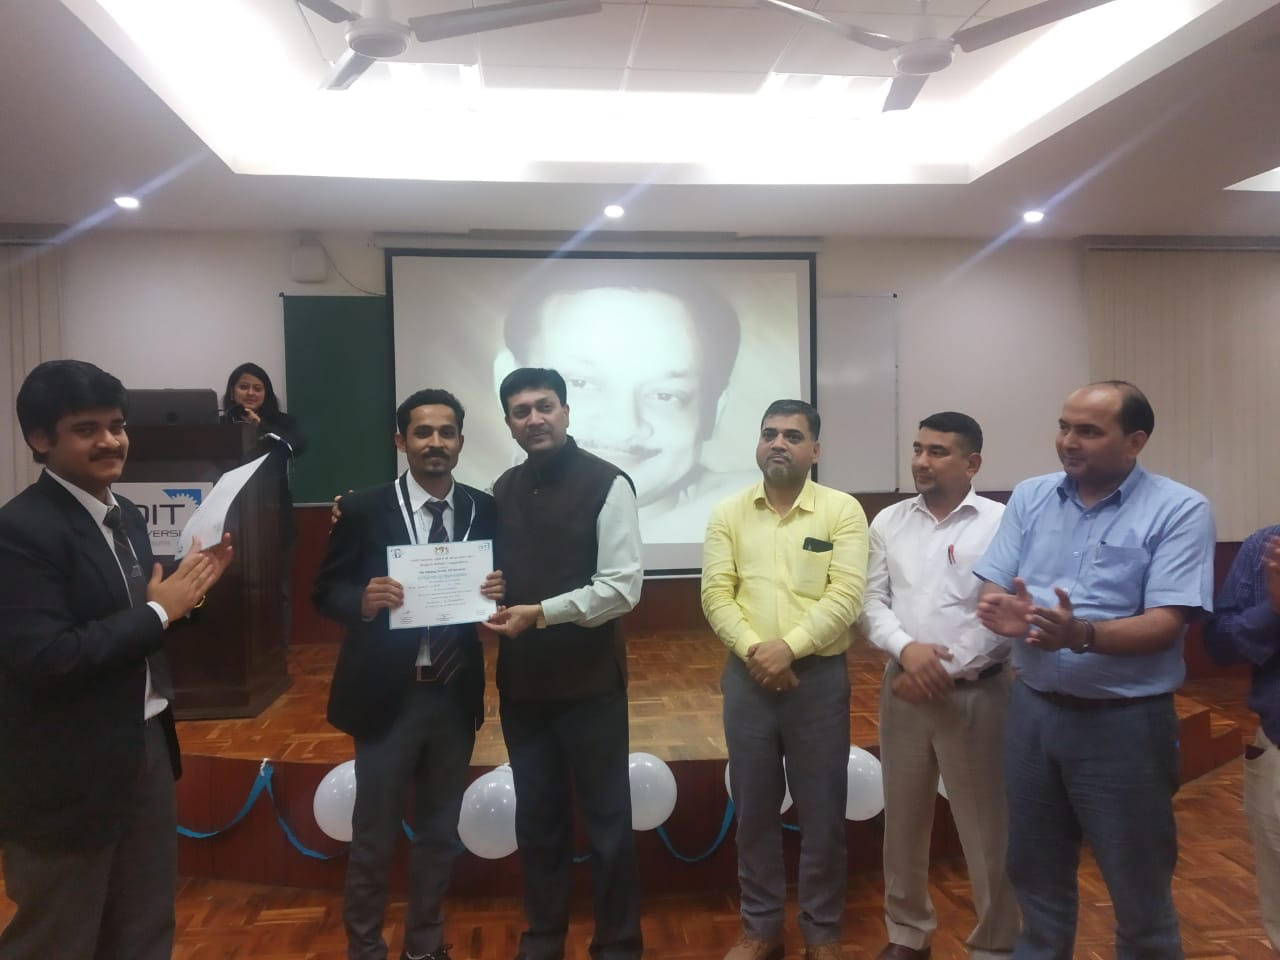 Gaurav Sharma, Prize in debate competition